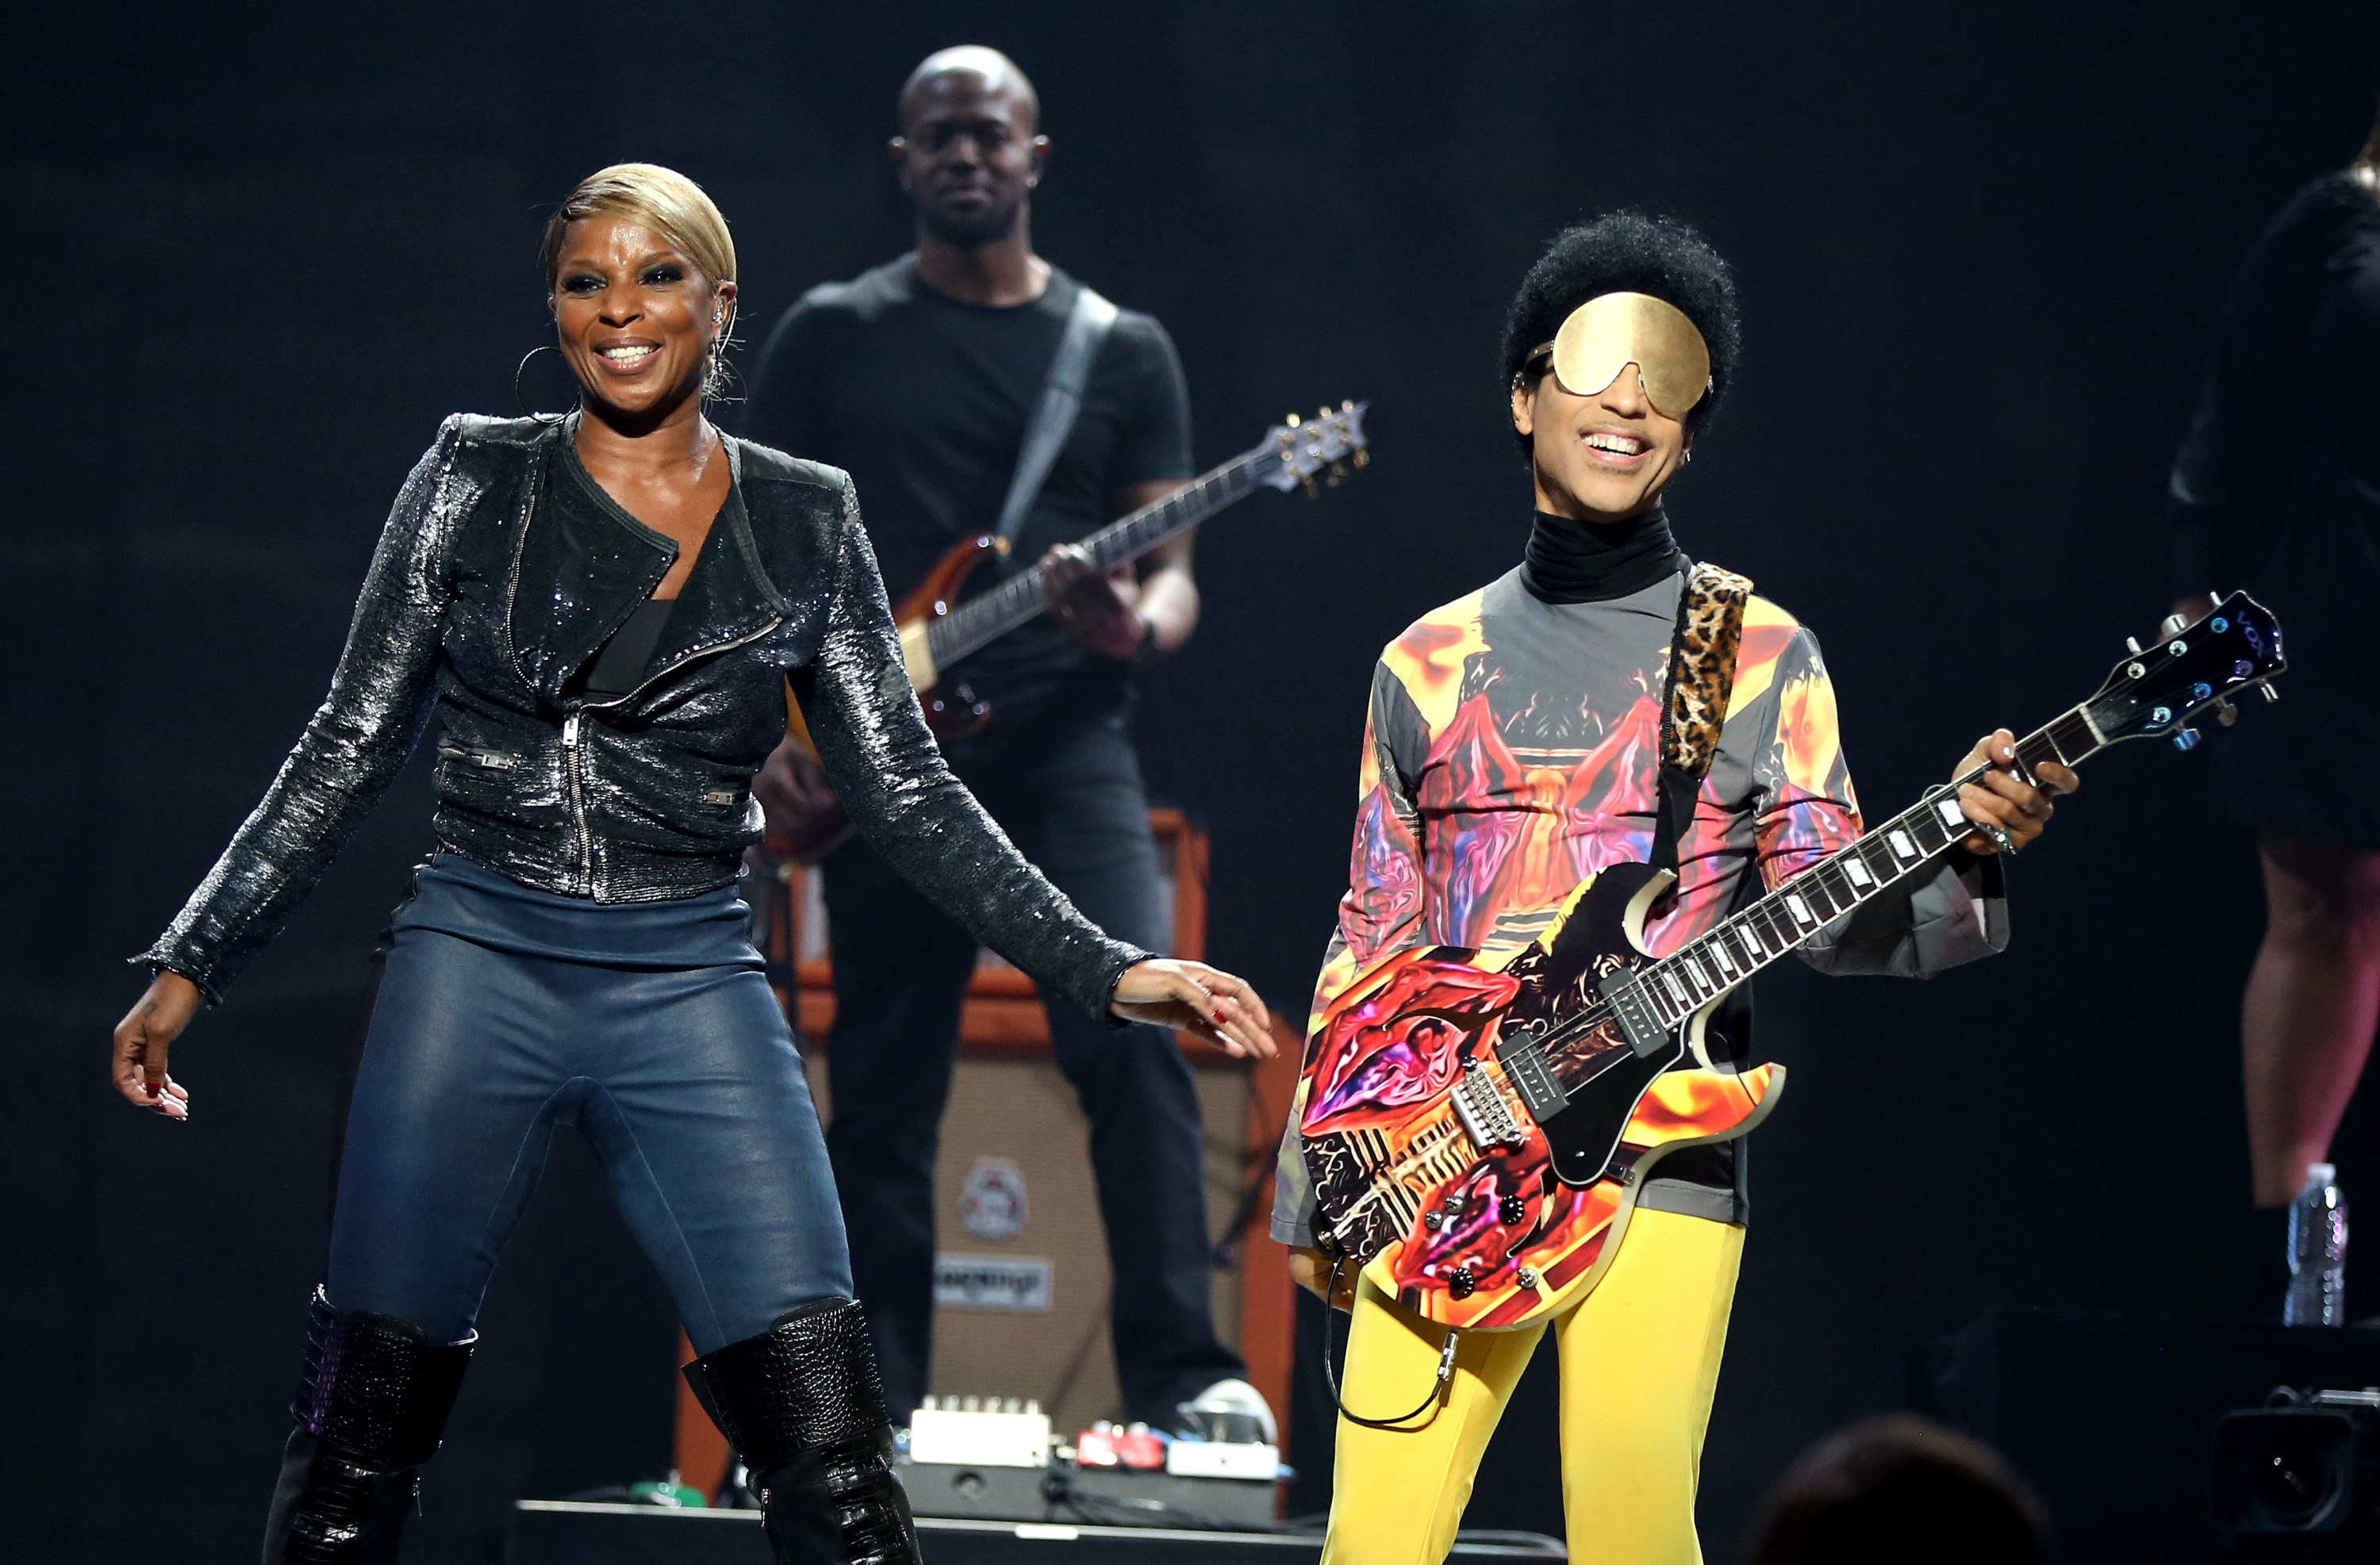 Image: Mary J. Blige and Prince 2012 iHeartRadio Music Festival